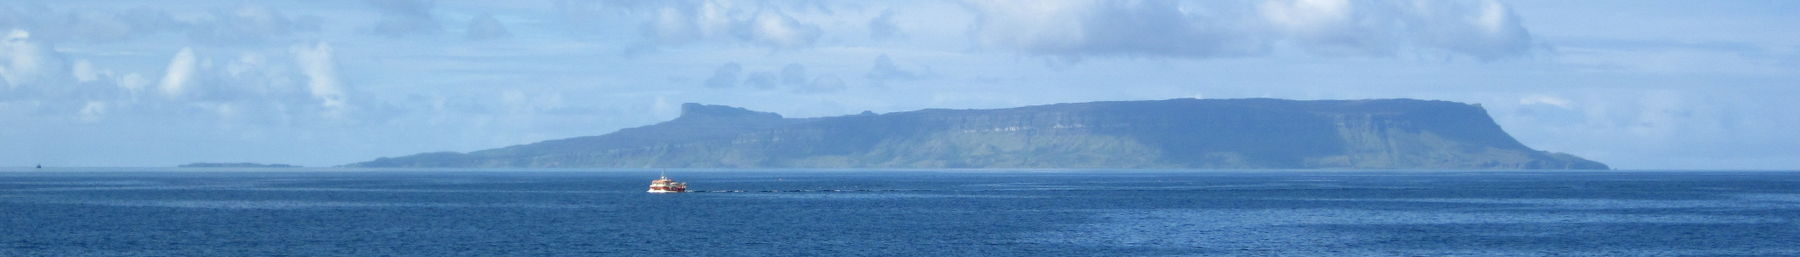 Isle of Eigg - Flickr - Graham Grinner Lewis - banner.jpg